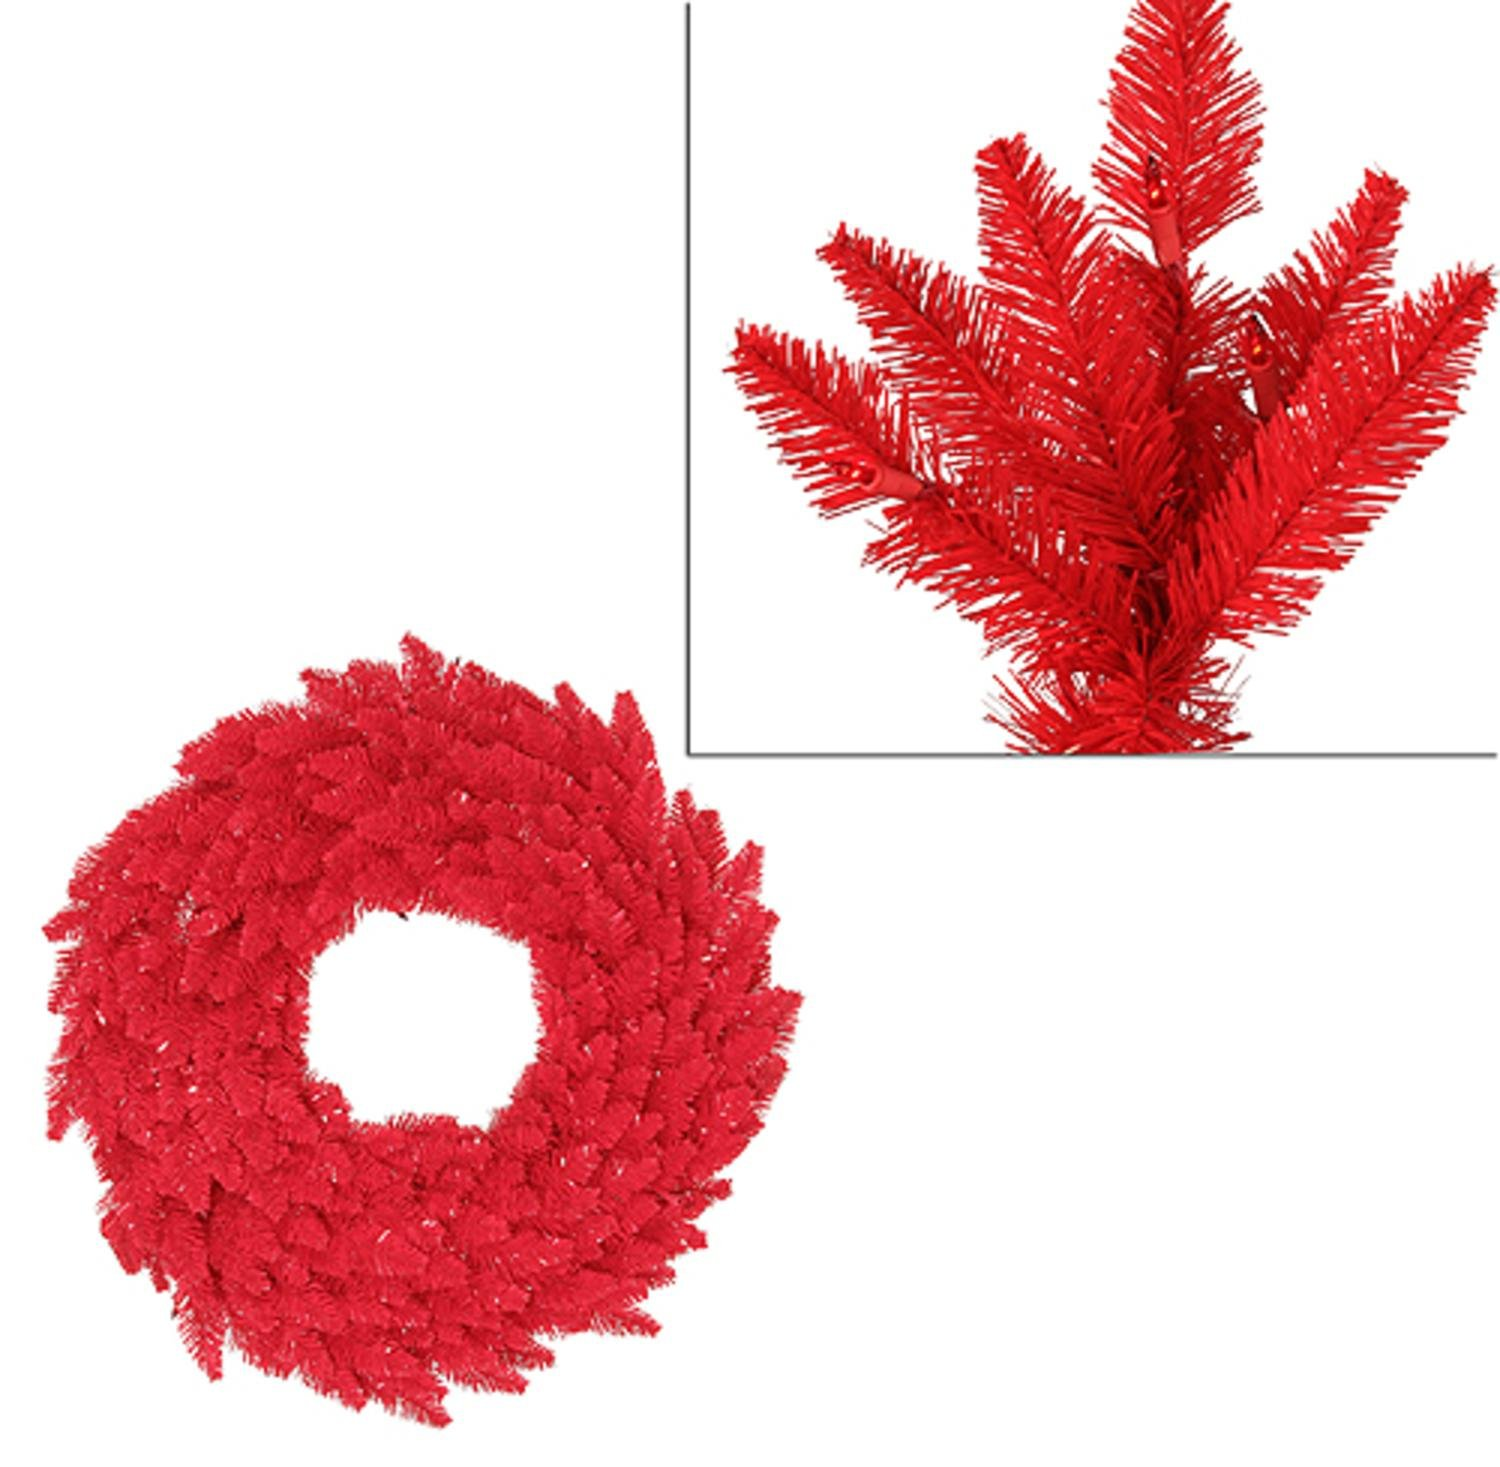 5' Pre-Lit Red Ashley Spruce Artificial Christmas Wreath - Red Lights